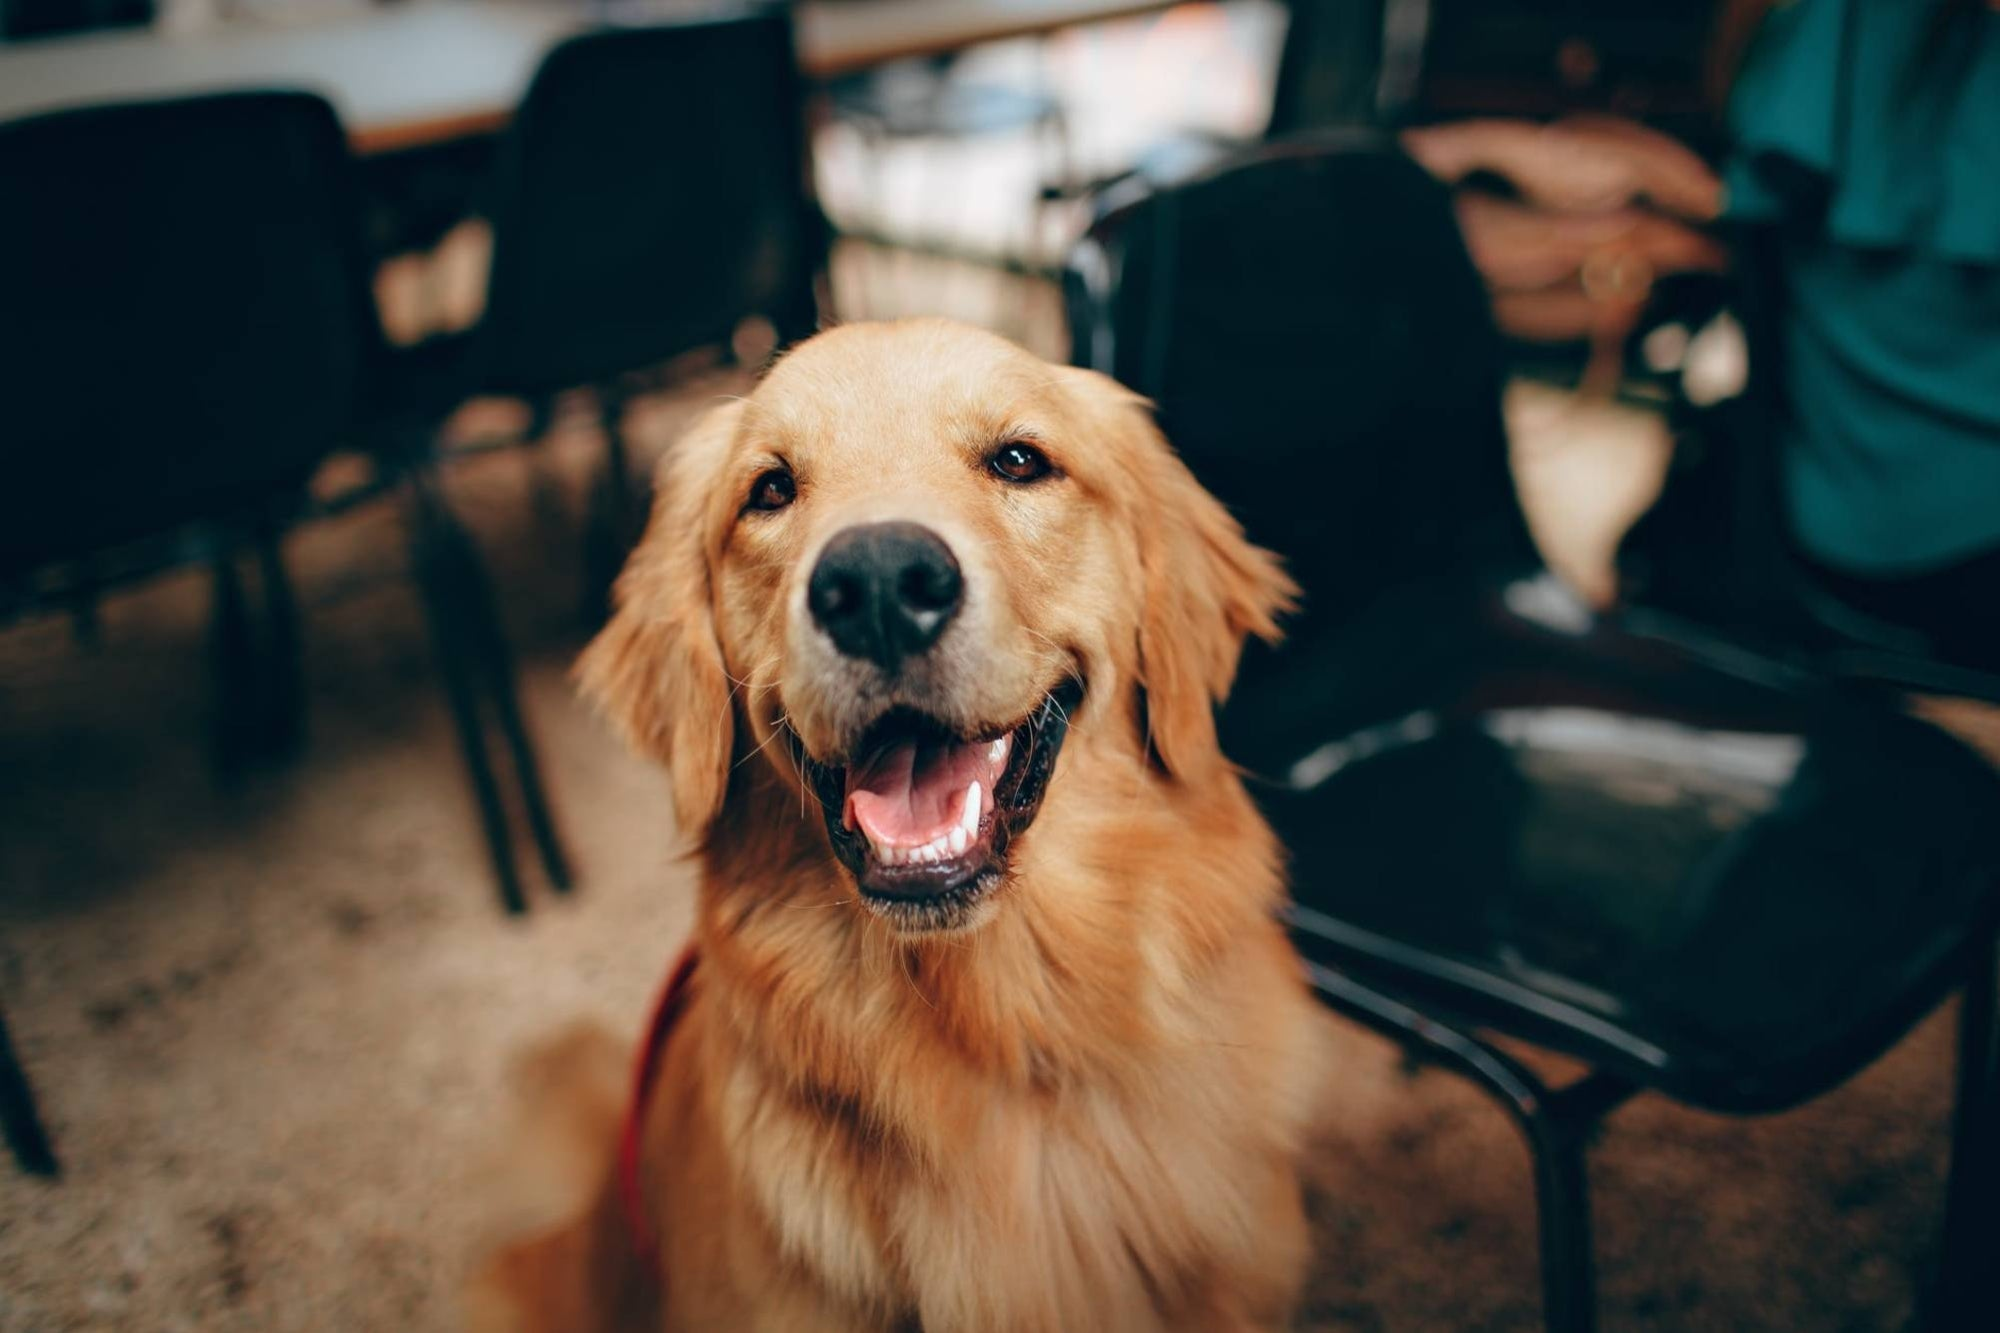 There is insurance for your pet and here are some reasons to consider it